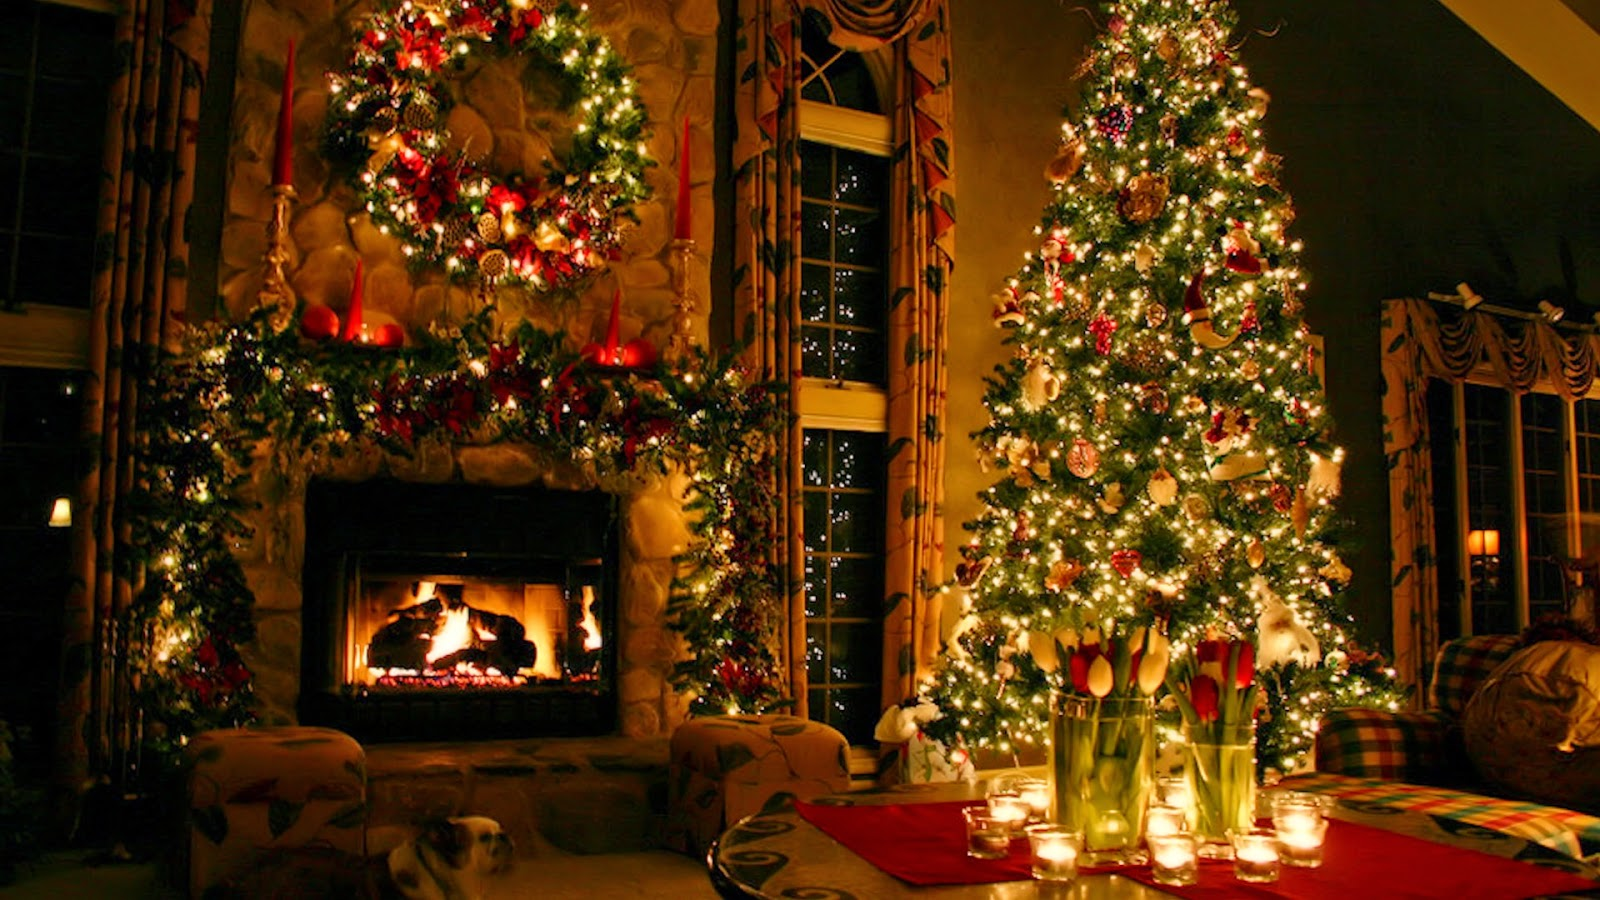 Mac os x wallpapers christmas computer wallpaper - Pretty christmas pictures ...